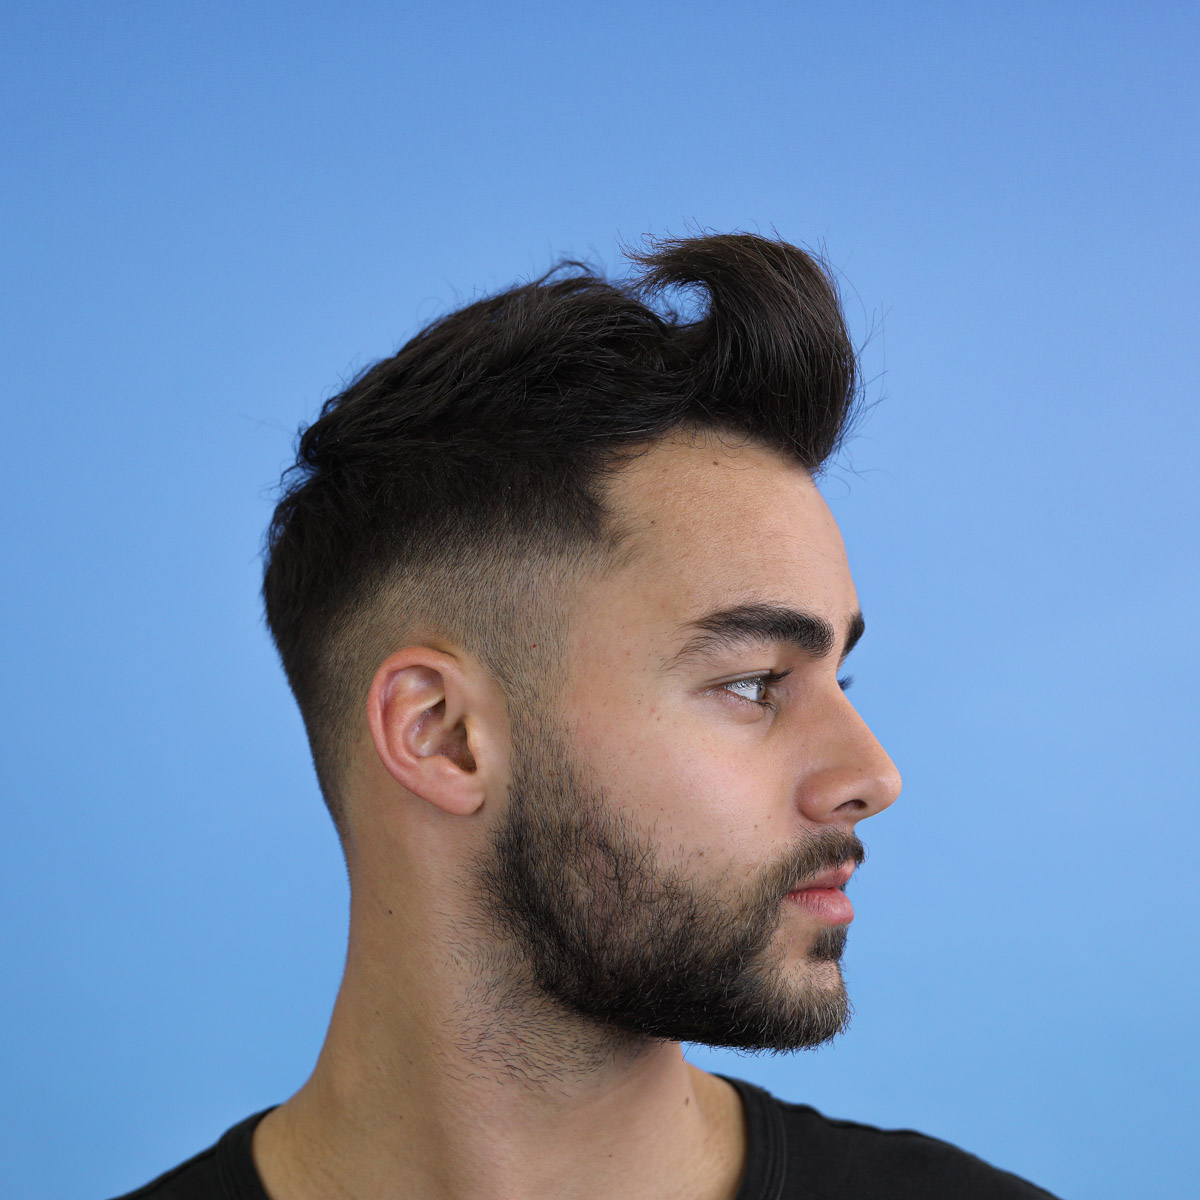 nioxin-haircut-style-grooming-quiff-man-for-himself